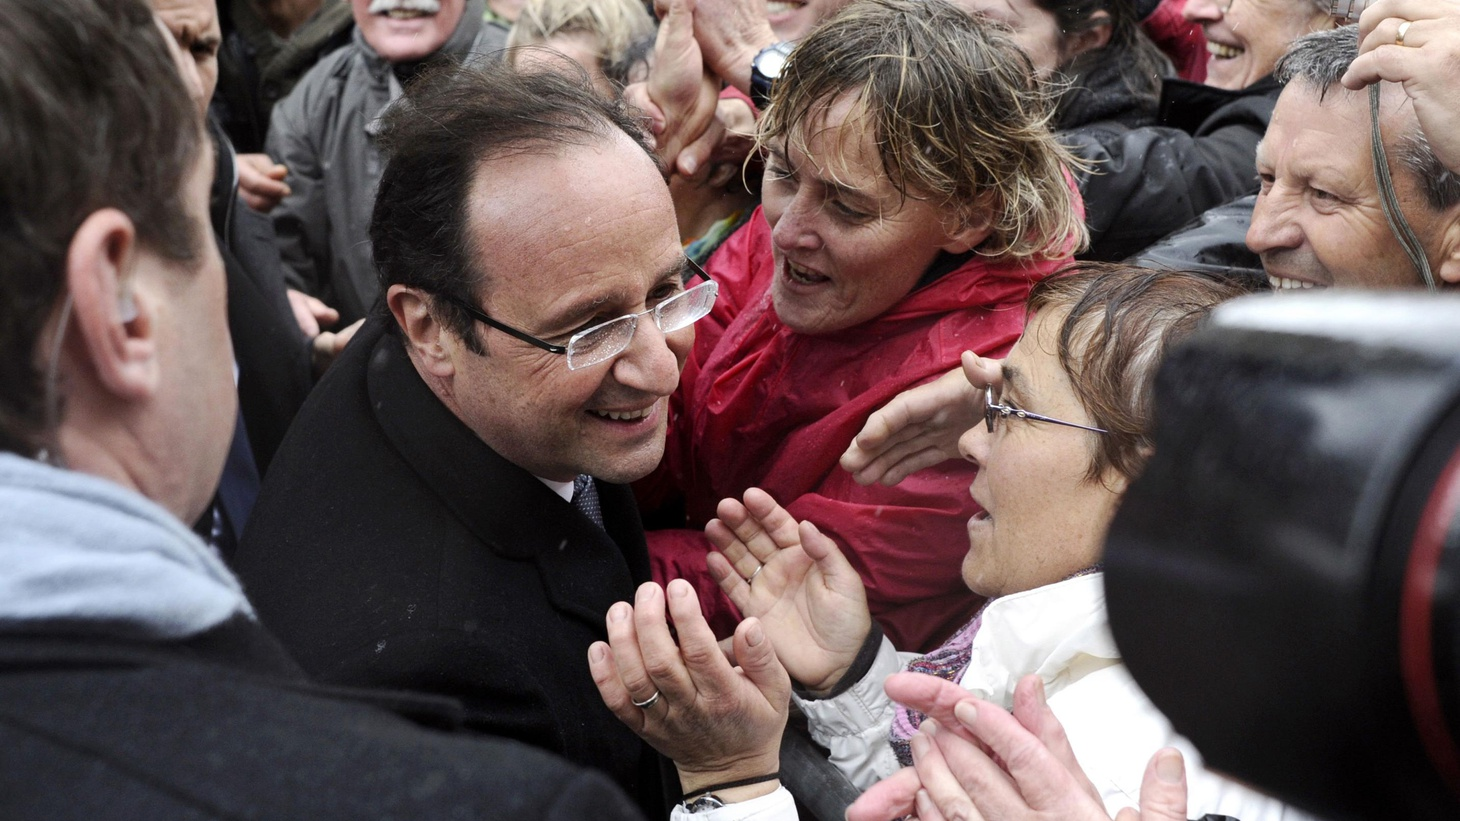 France's field of presidential candidates narrowed to incumbent Nicolas Sarkozy and Socialist Party candidate François Hollande after the first round of voting yesterday.